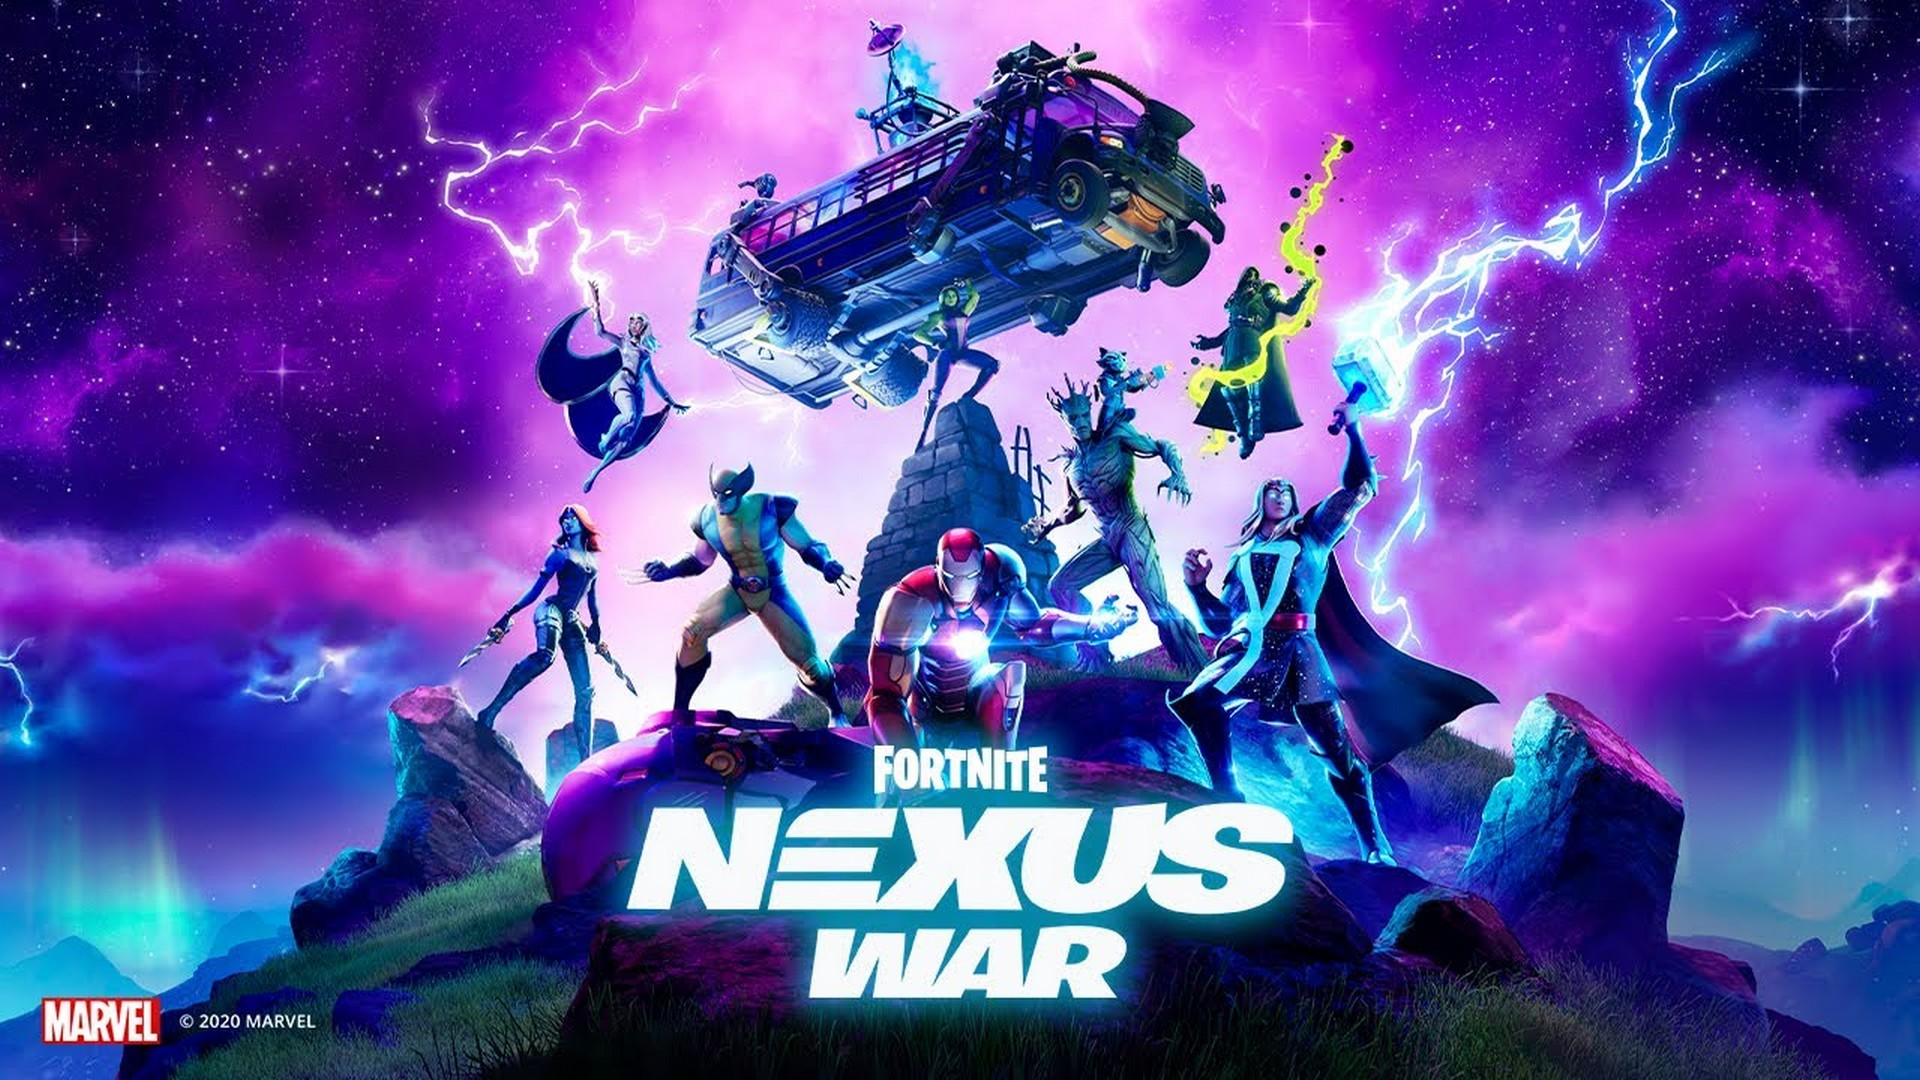 Join Marvel Heroes And Villains In Fortnite Nexus War, Available Now